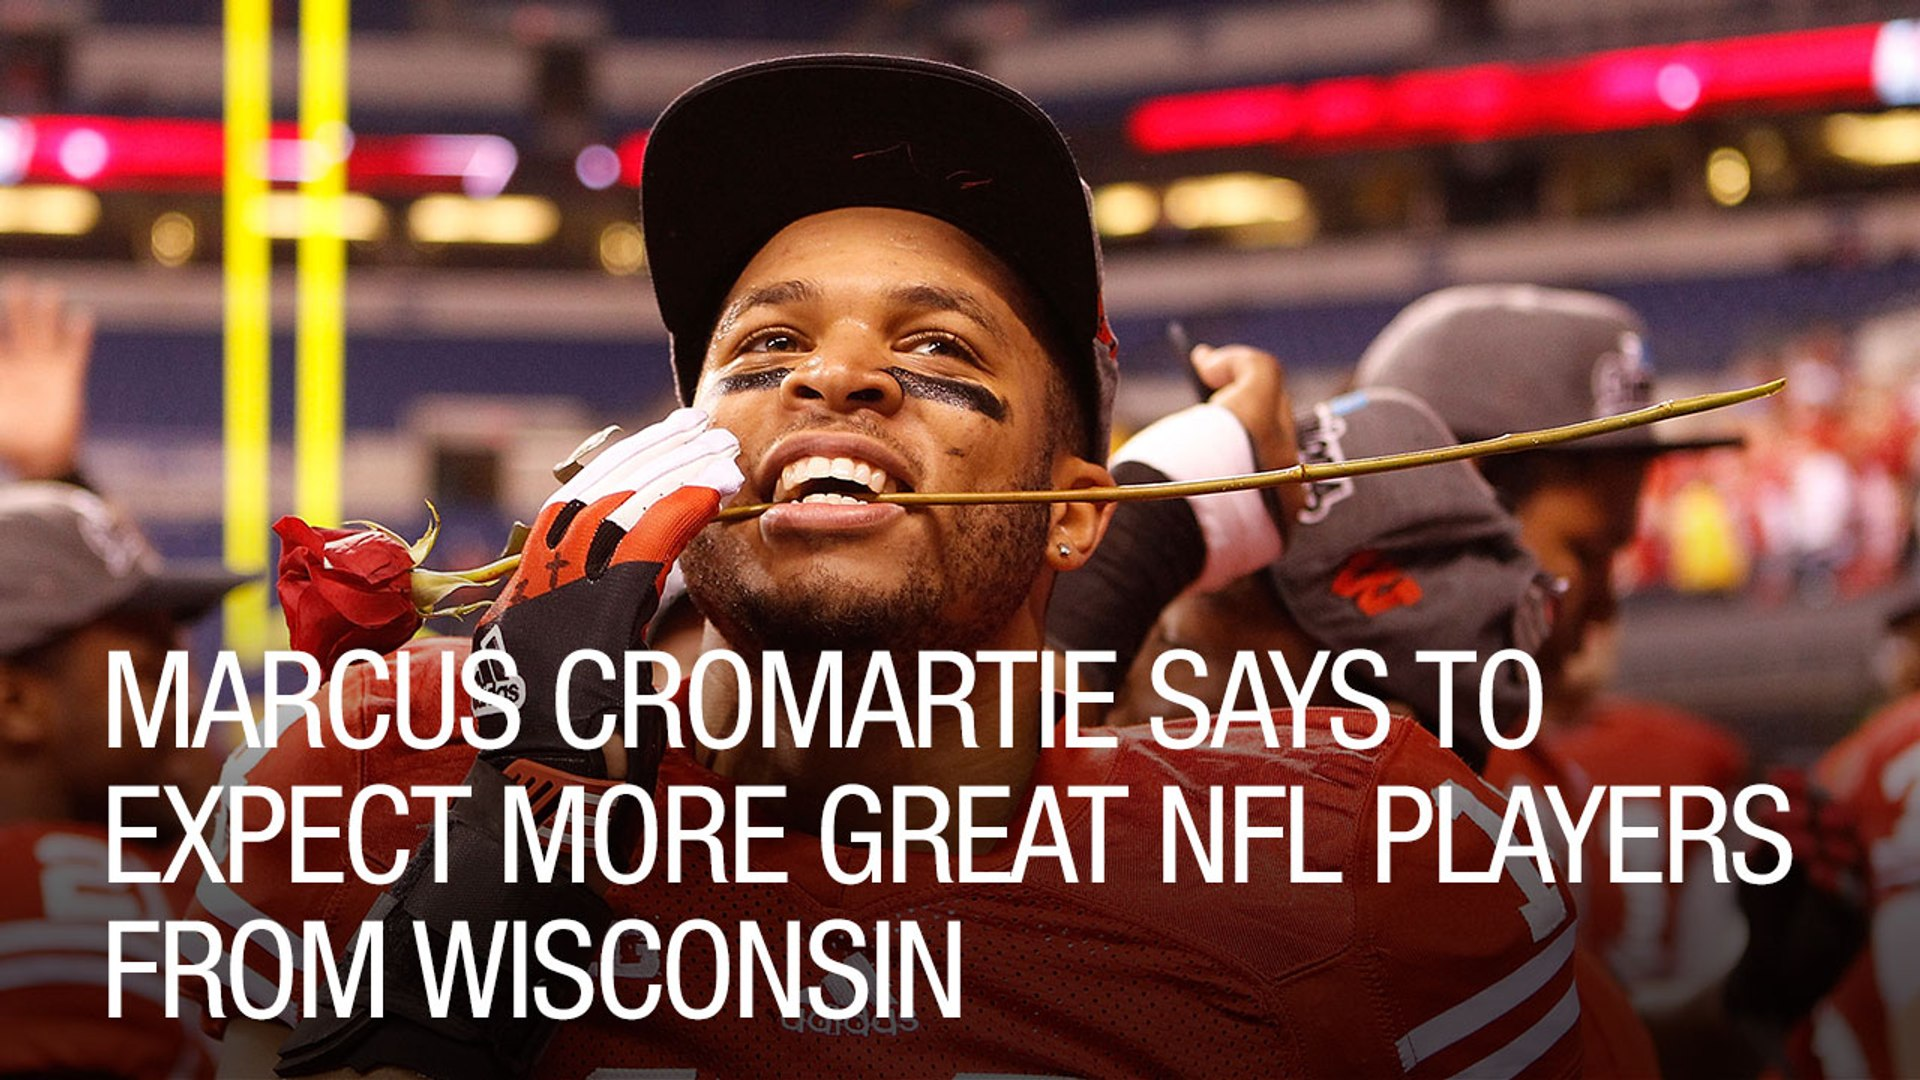 Marcus Cromartie Says To Expect More Great NFL Players From Wisconsin